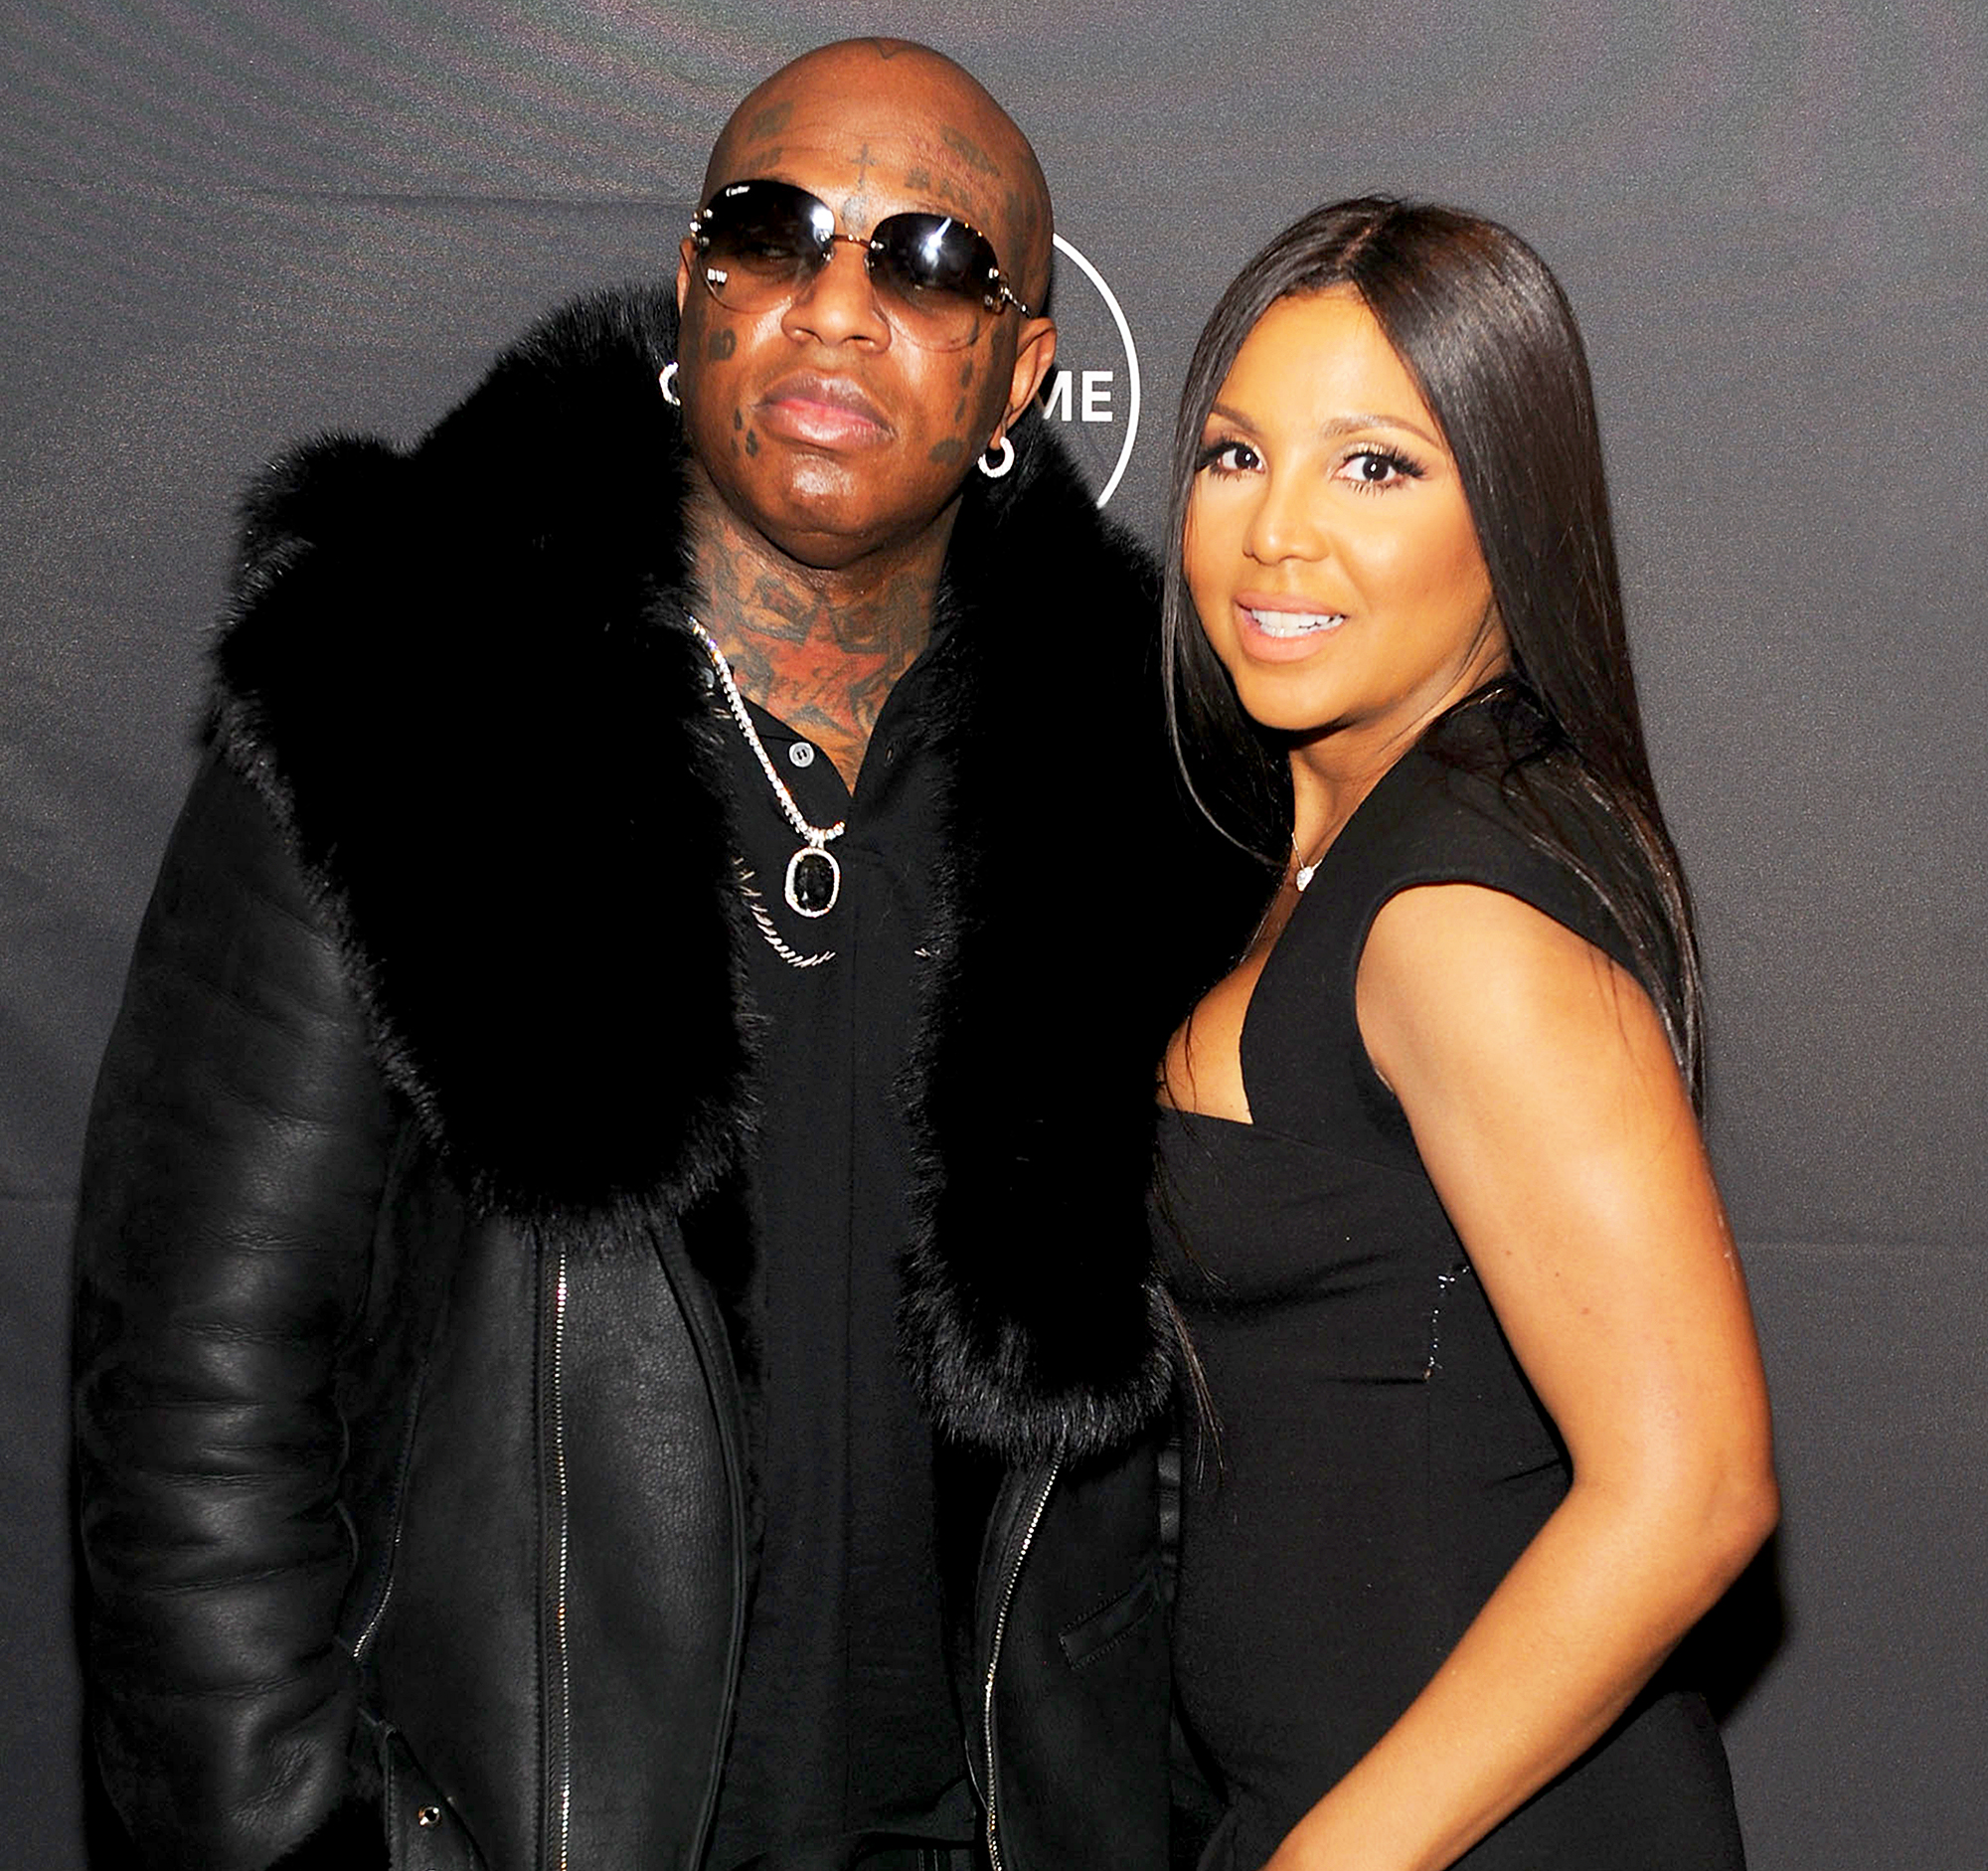 Birdman: Toni Braxton is 'my life'